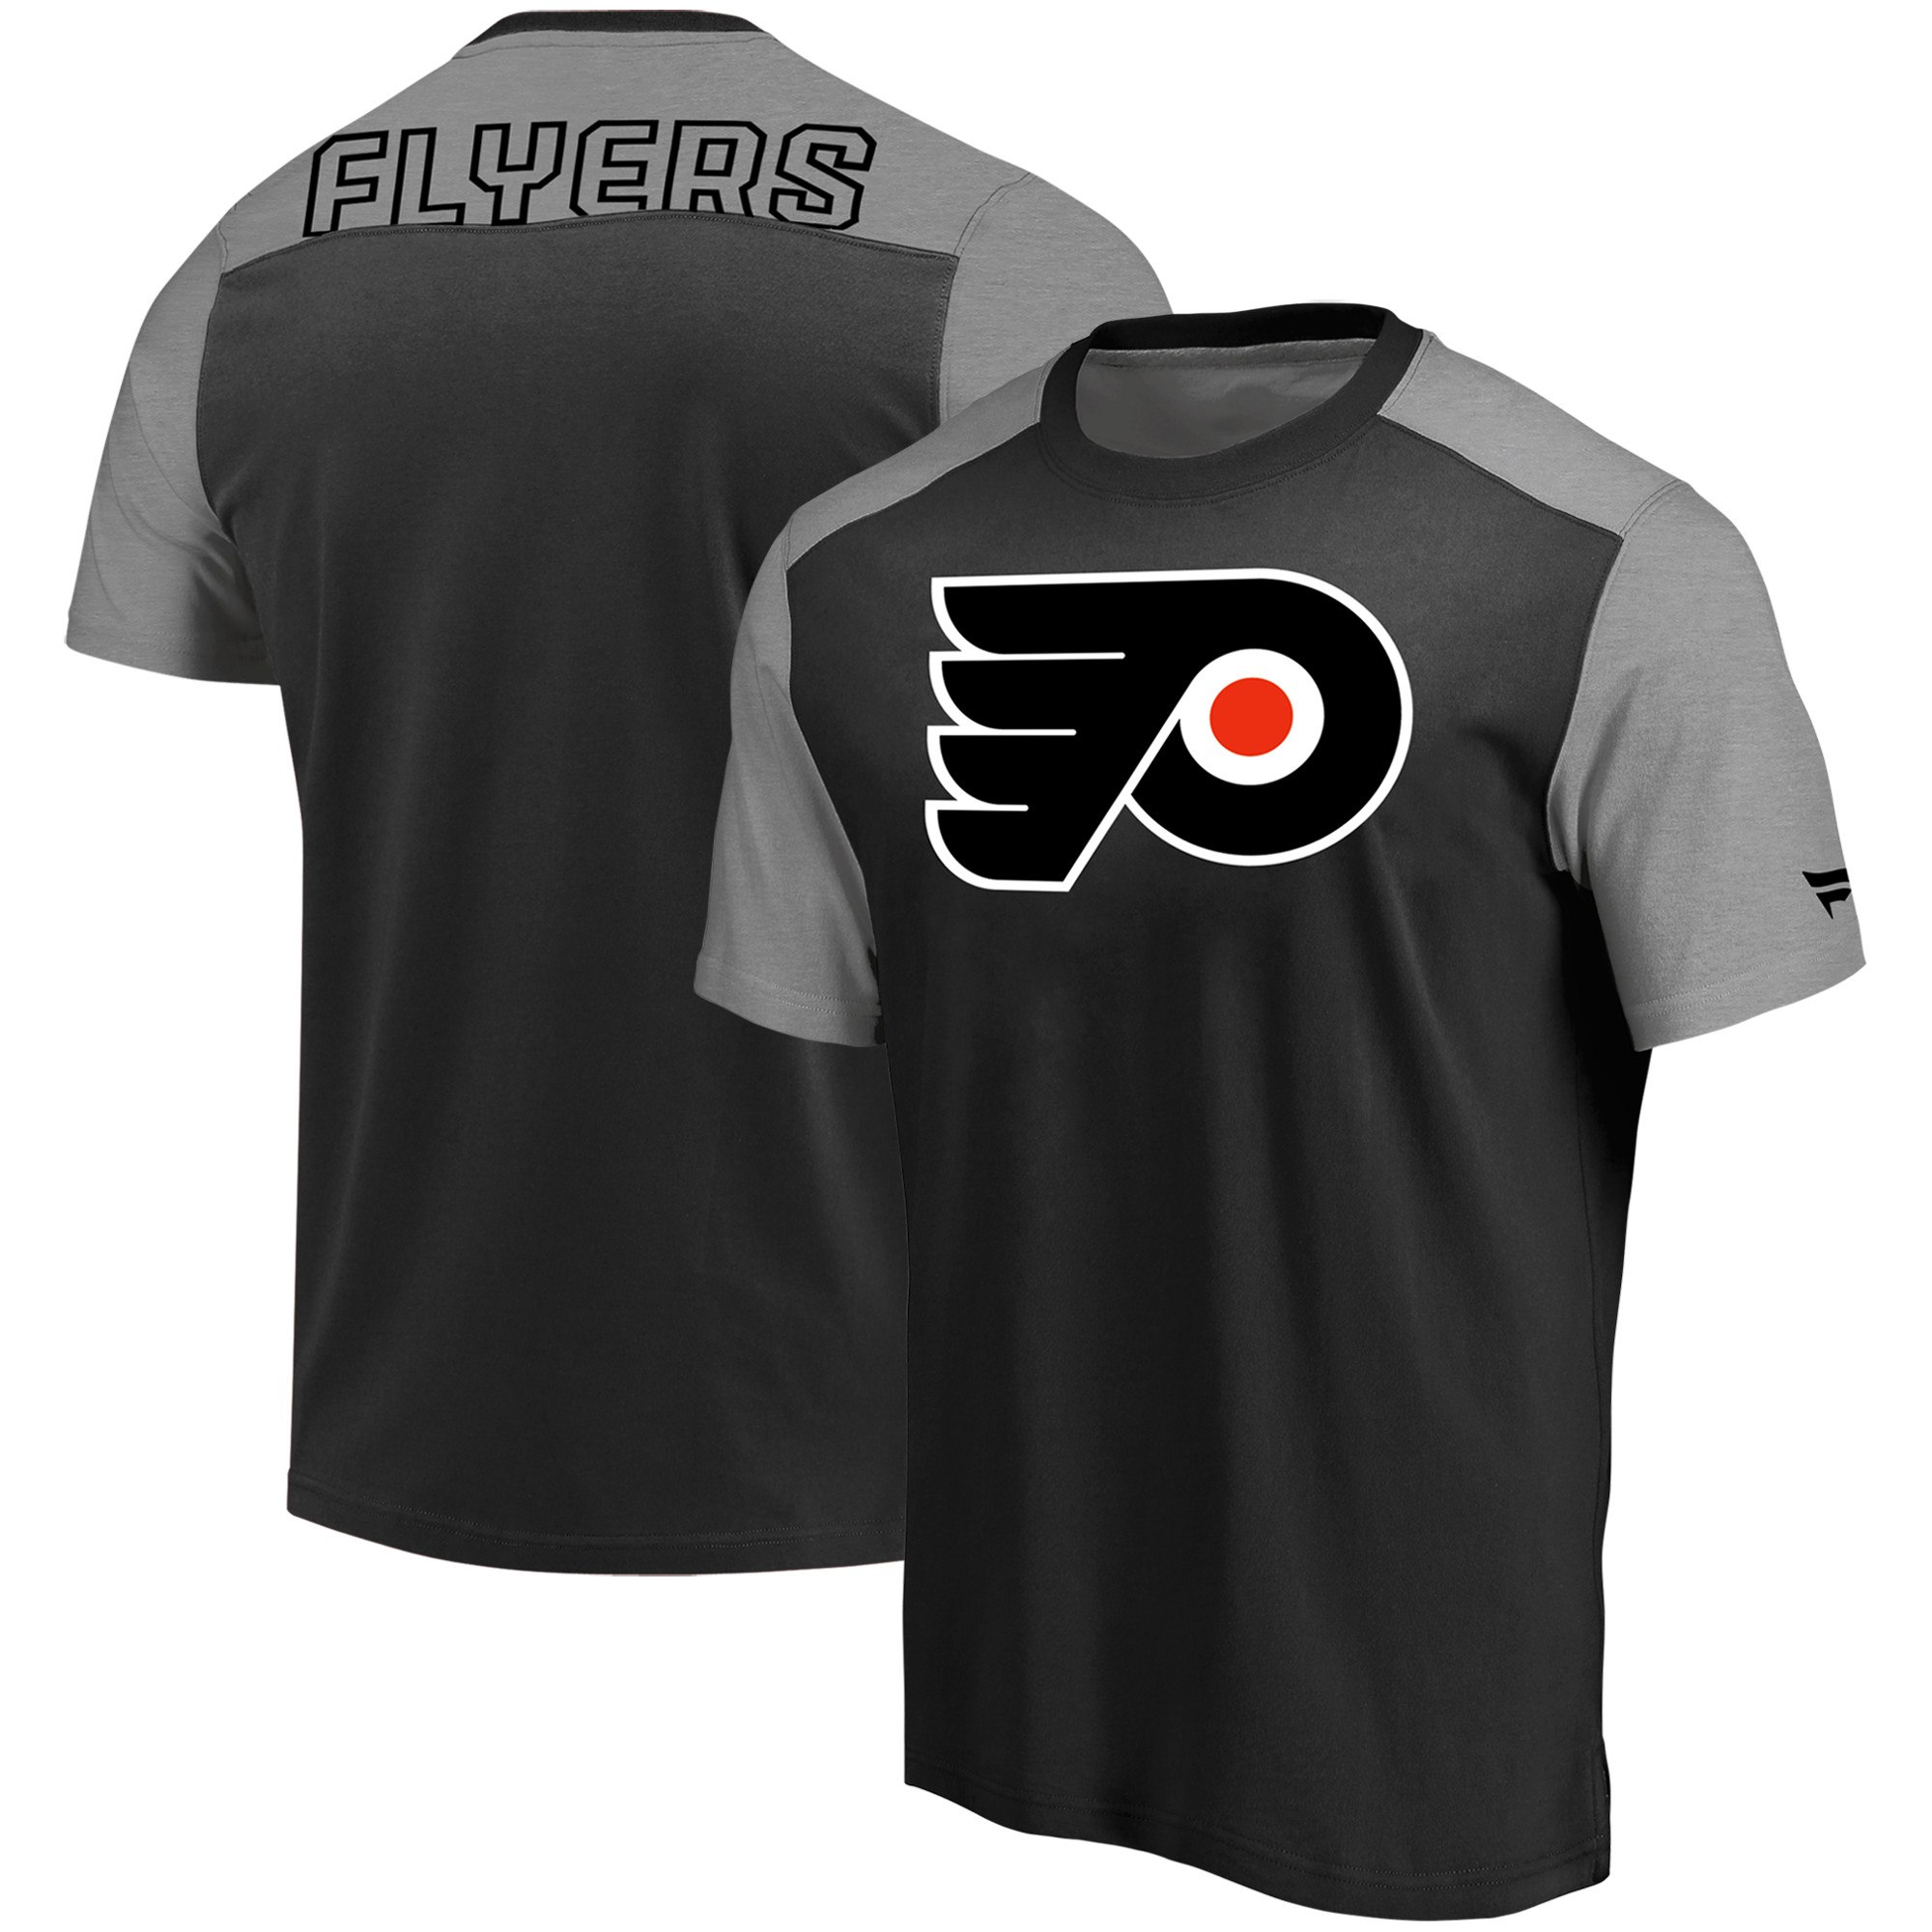 Philadelphia Flyers Fanatics Branded Iconic Blocked T-Shirt BlackHeathered Gray